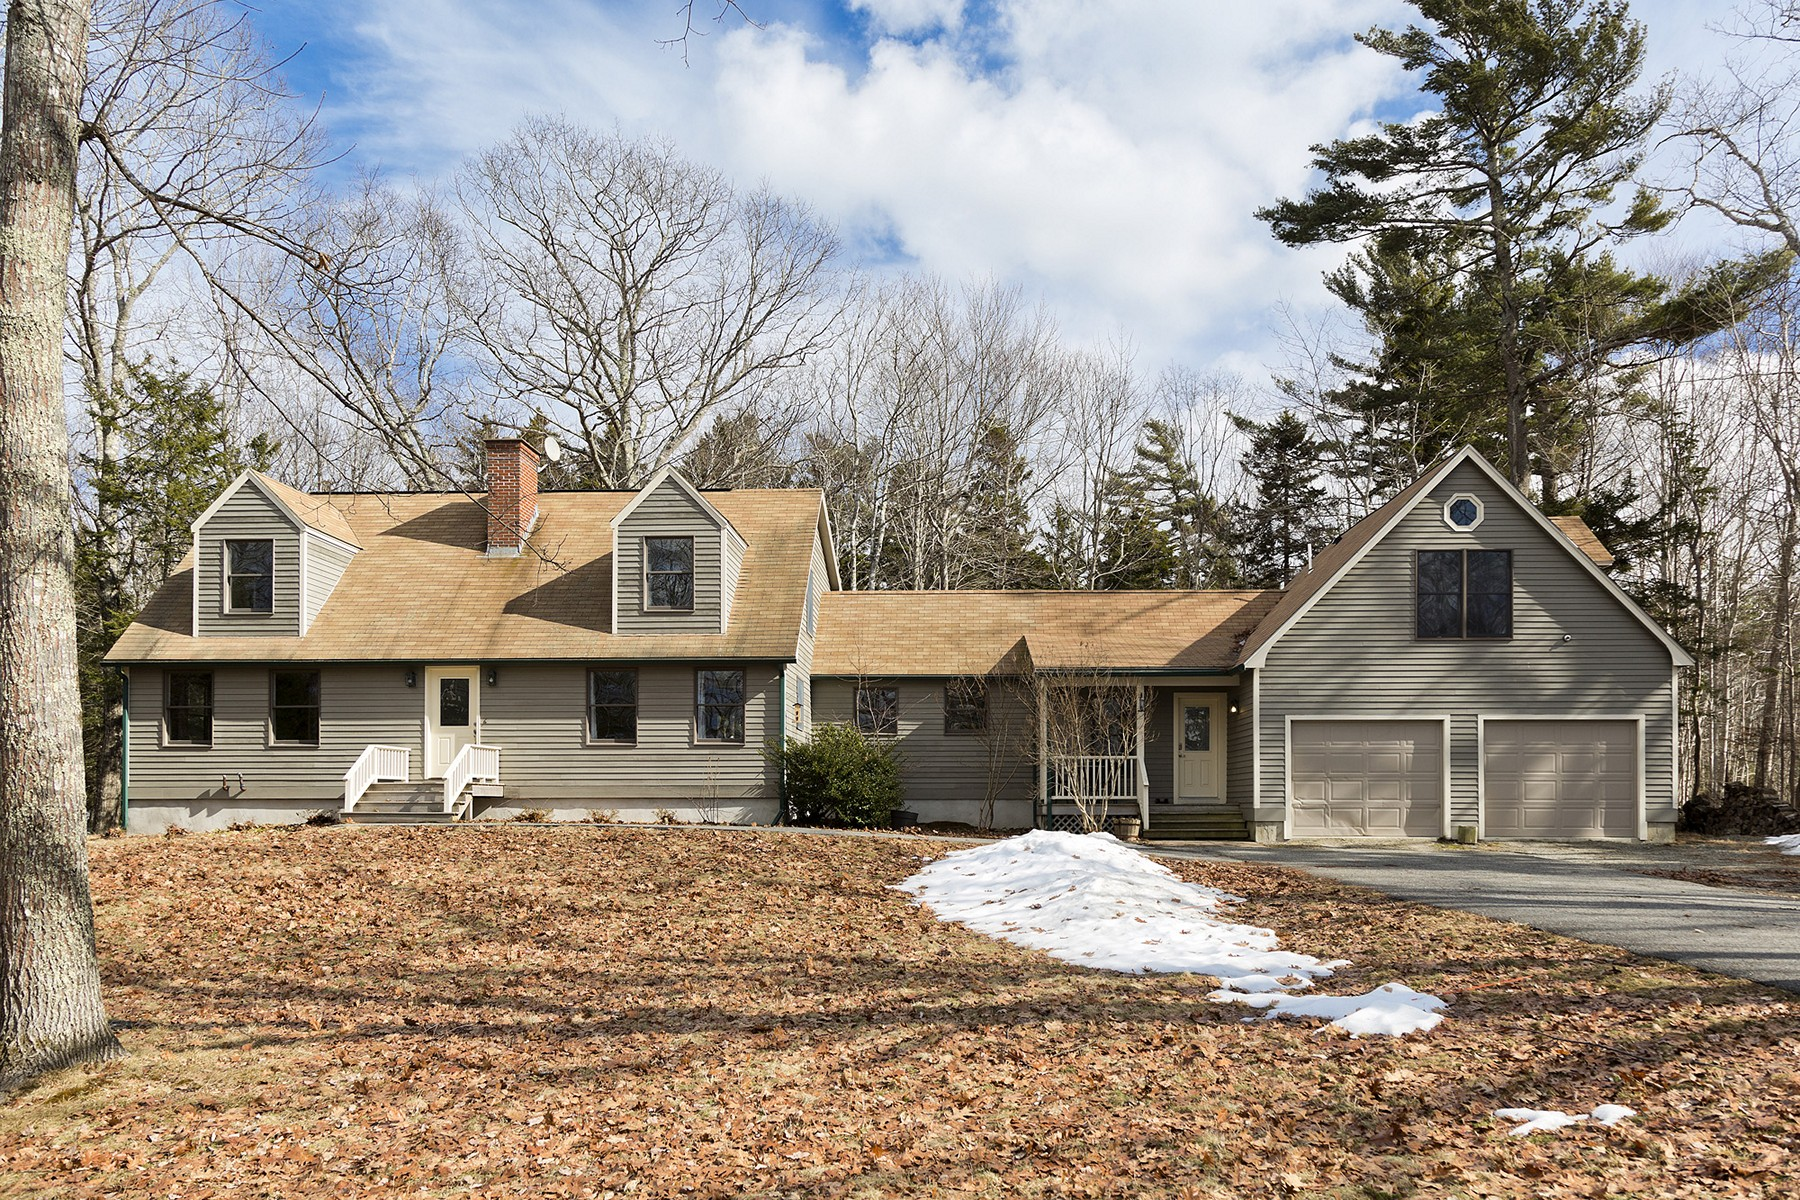 Single Family Home for Sale at 28 Russell Farm Road Bar Harbor, Maine, 04609 United States